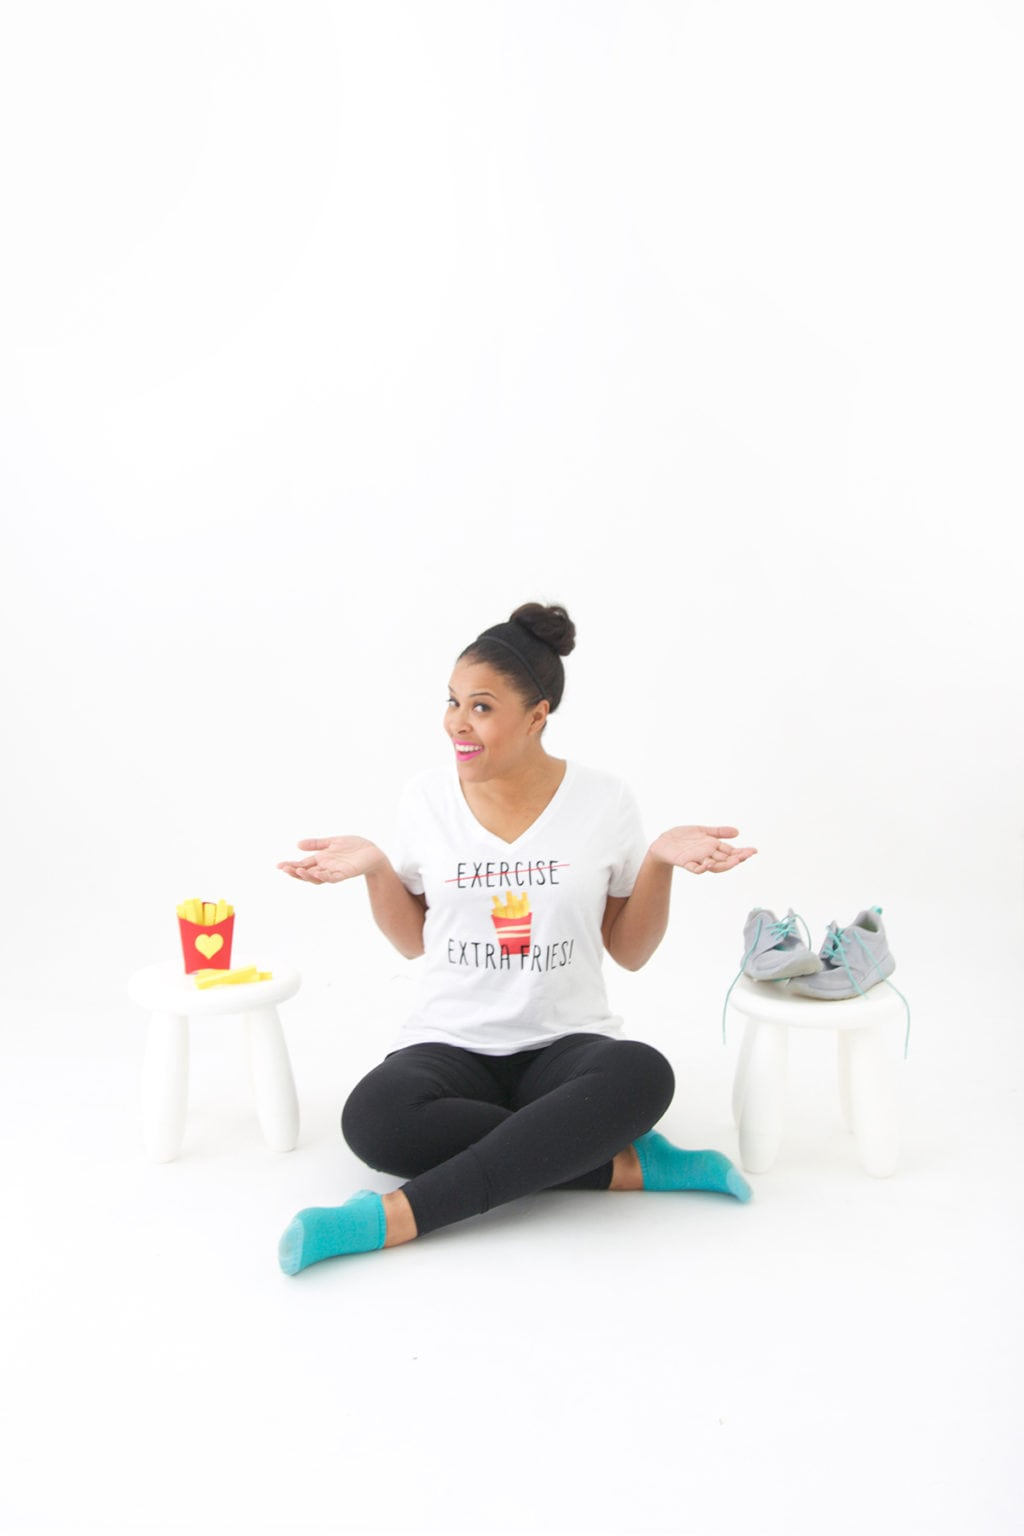 Cardio is great but sometimes you need to indulge in a little golden brown deliciousness! Trade the exercise for Extra Fries with this DIY Iron on Tee!